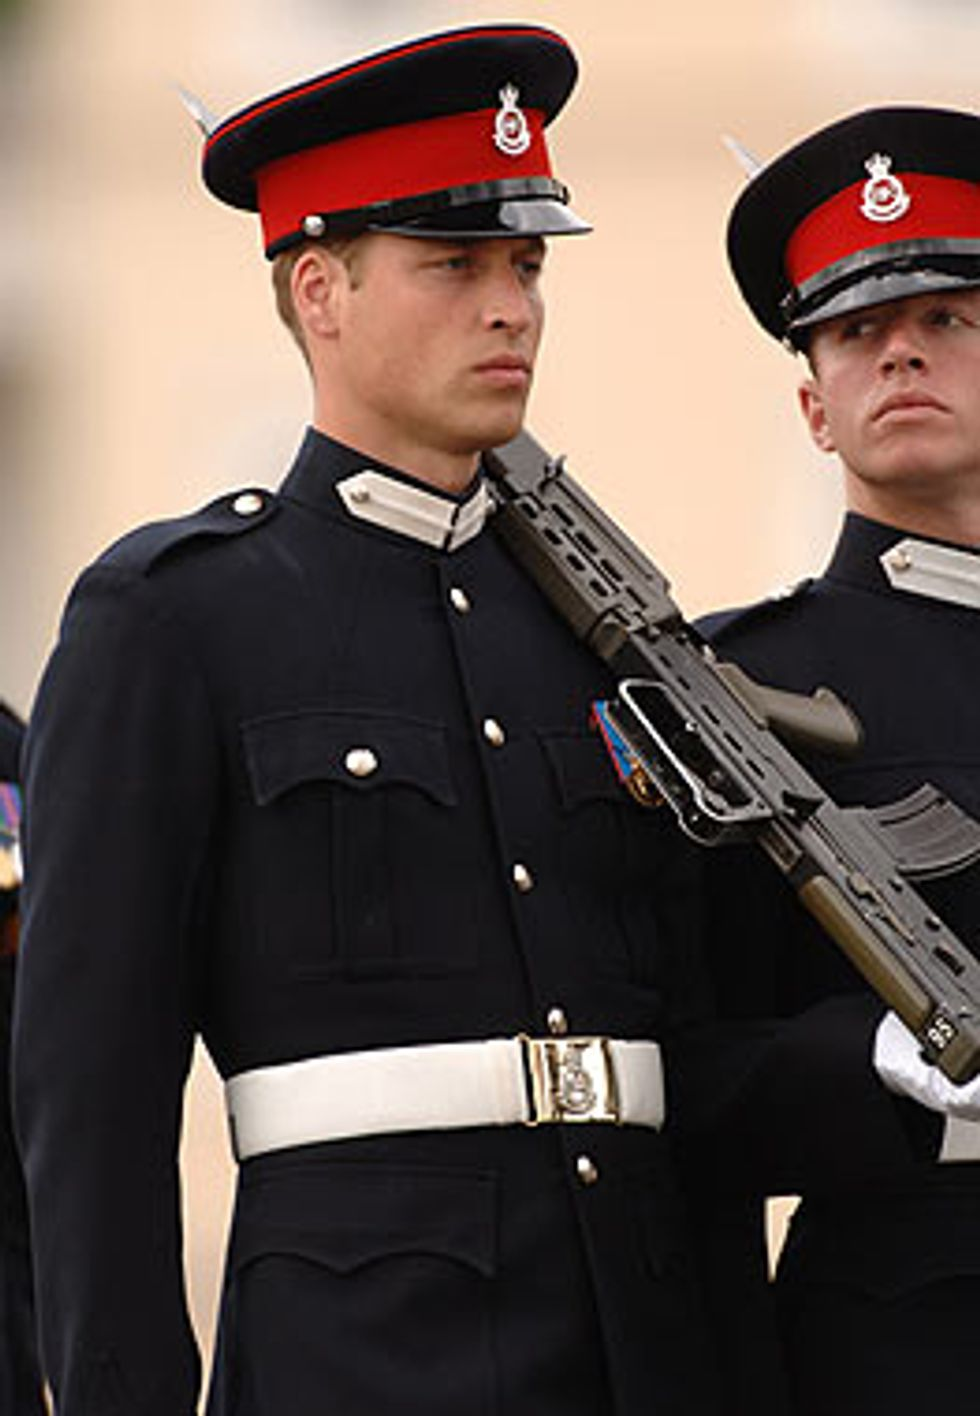 Hunky Prince William in Uniform